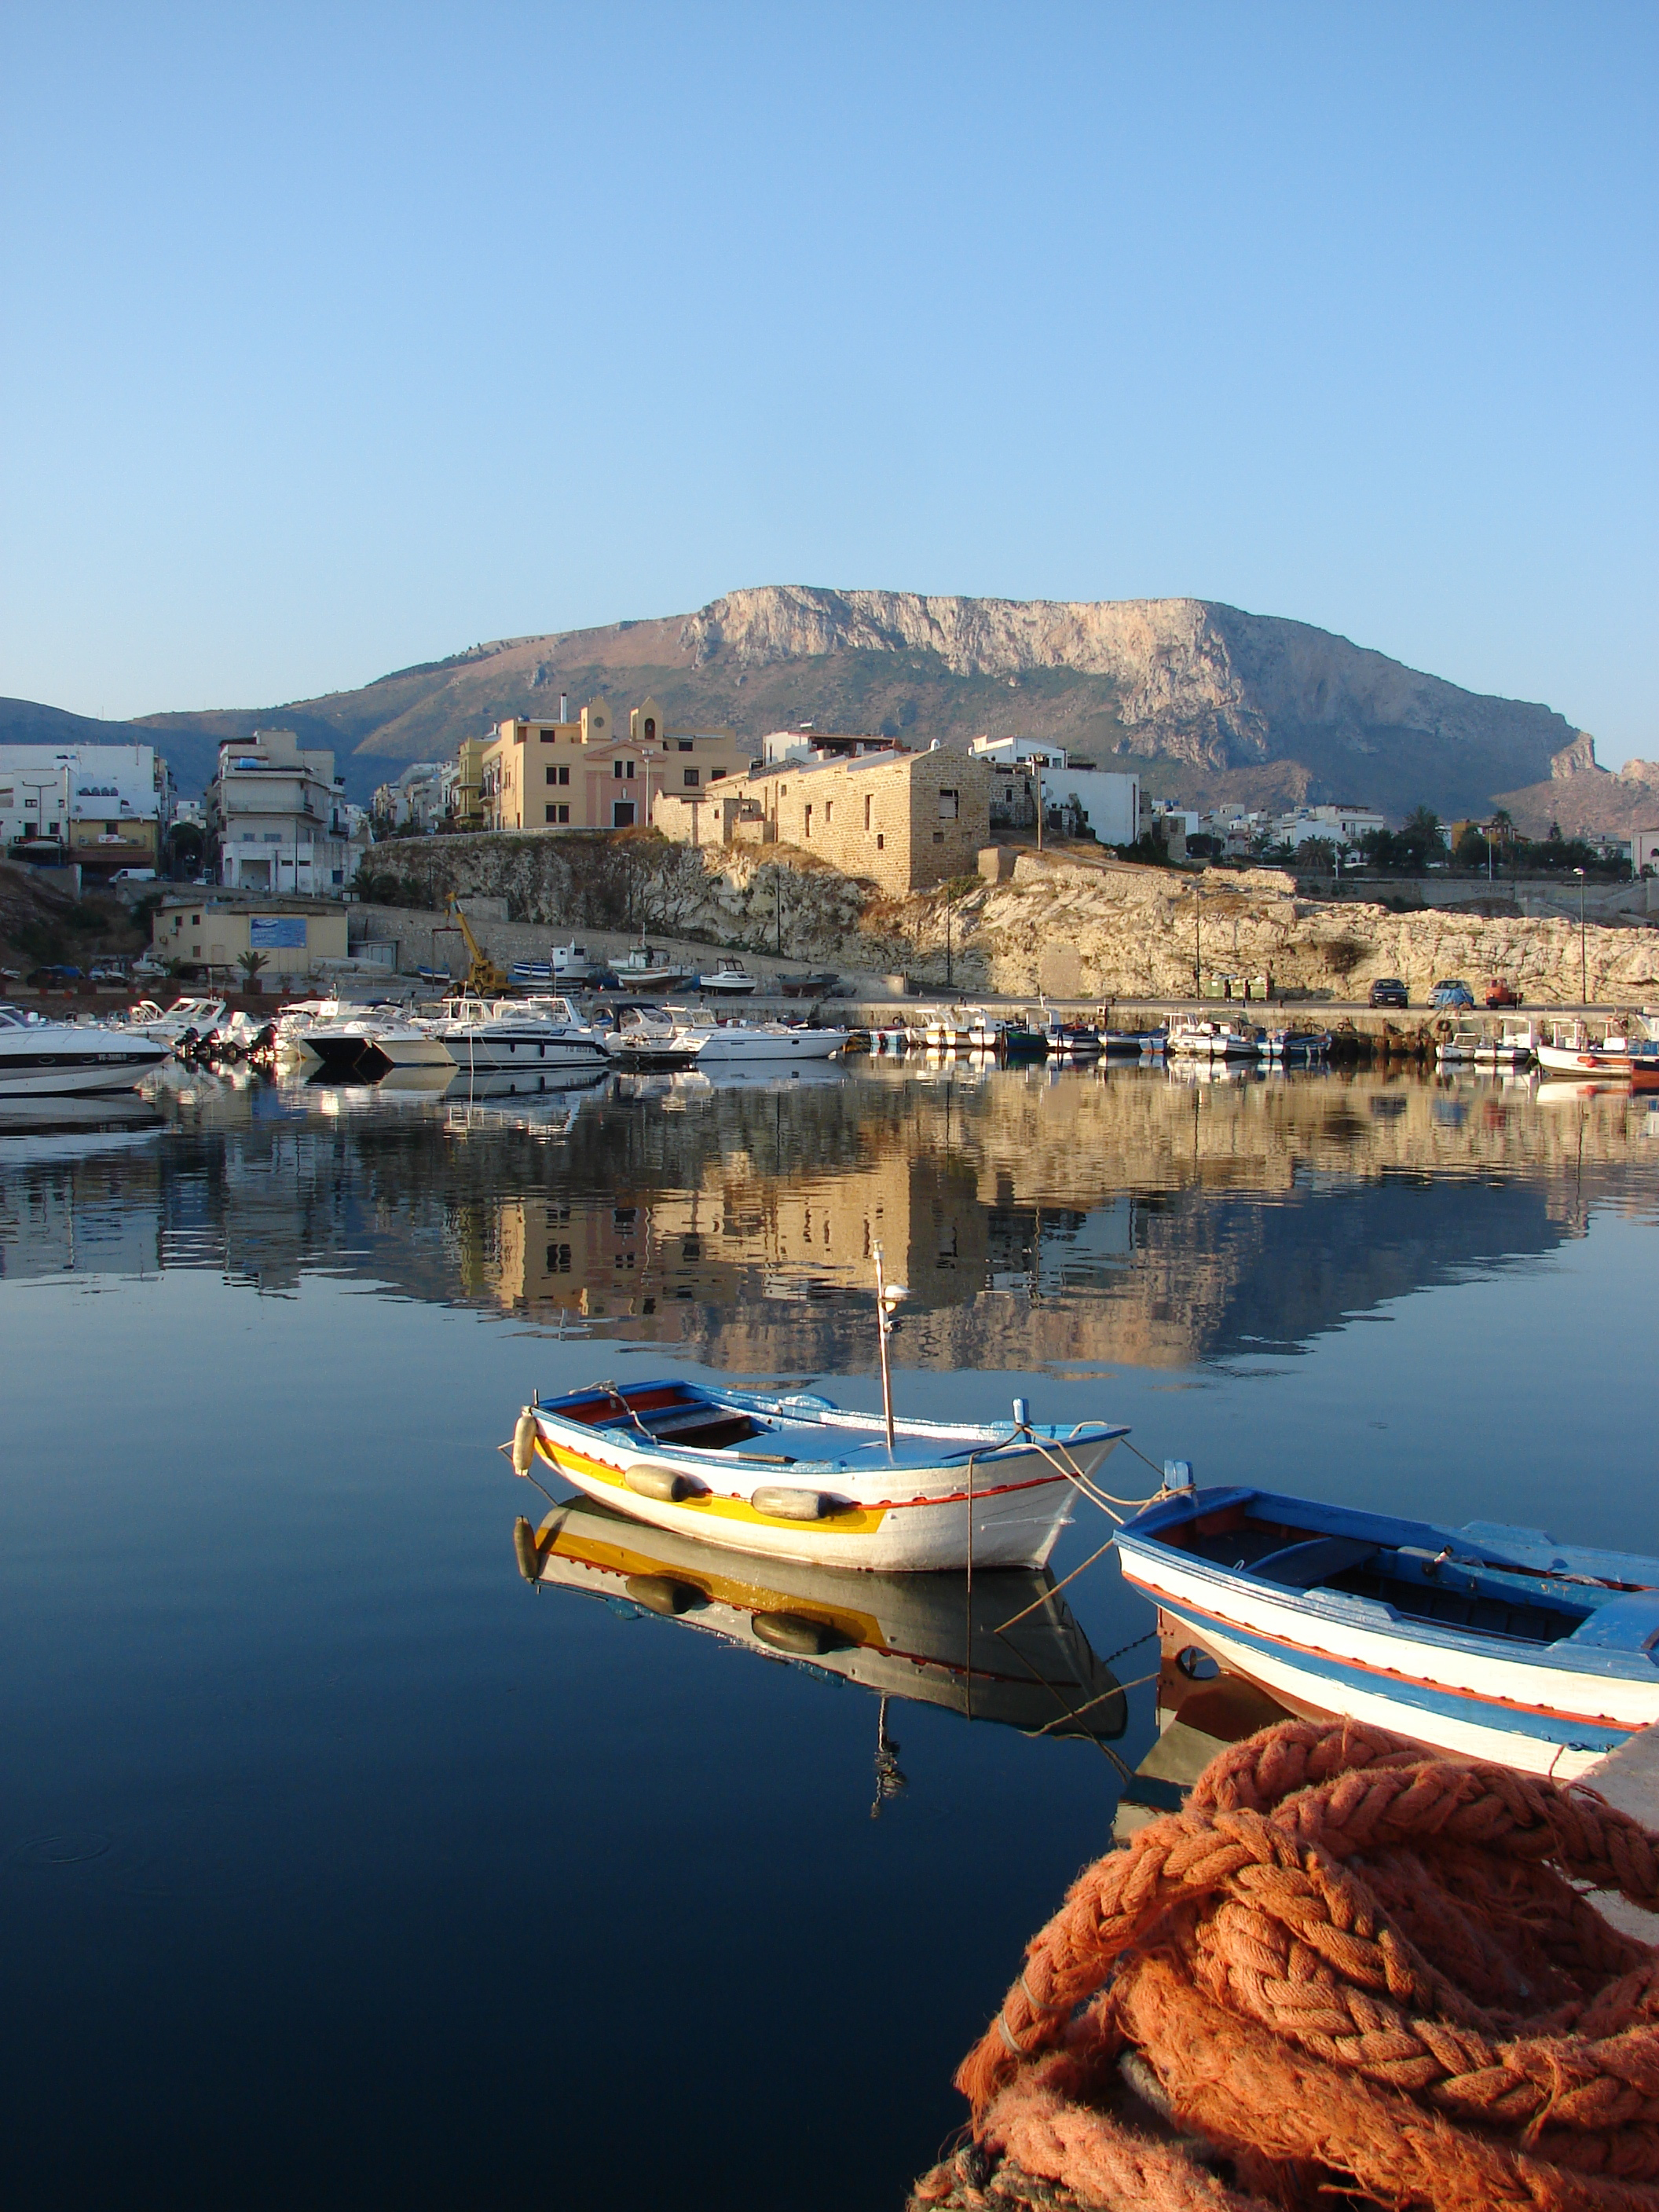 My favorite photo of a port in Sicily.